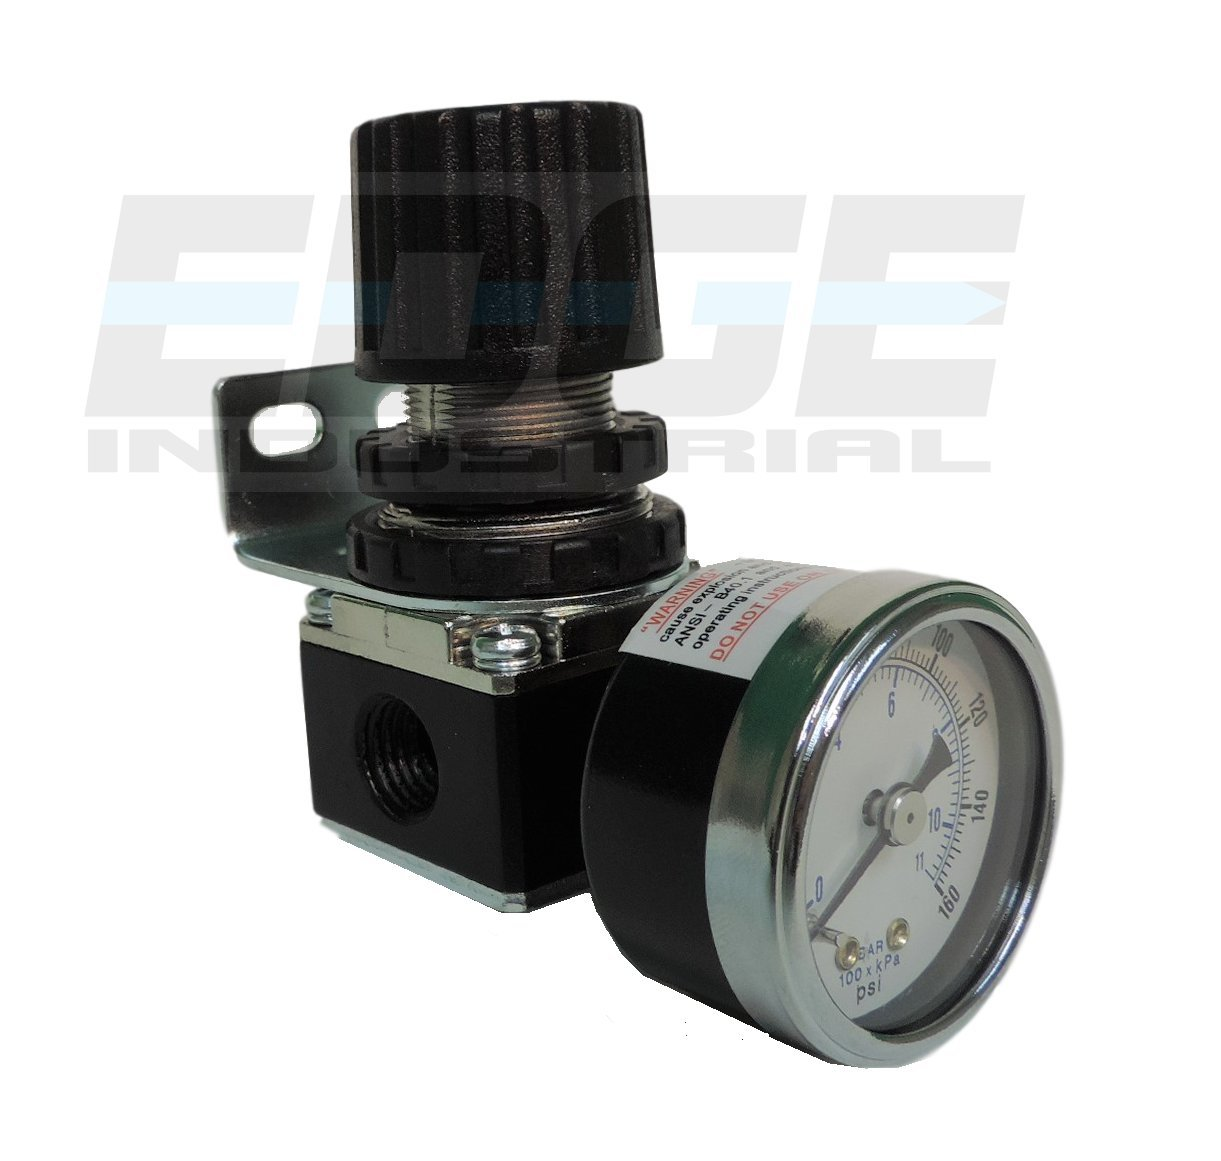 MINI PRESSURE REGULATOR FOR COMPRESSED AIR SYSTEMS, 1/4 NPT PORTS, ADJUST 7 TO 140 PSI 1/4 NPT PORTS T-H-B CO EDGE INDUSTRIAL